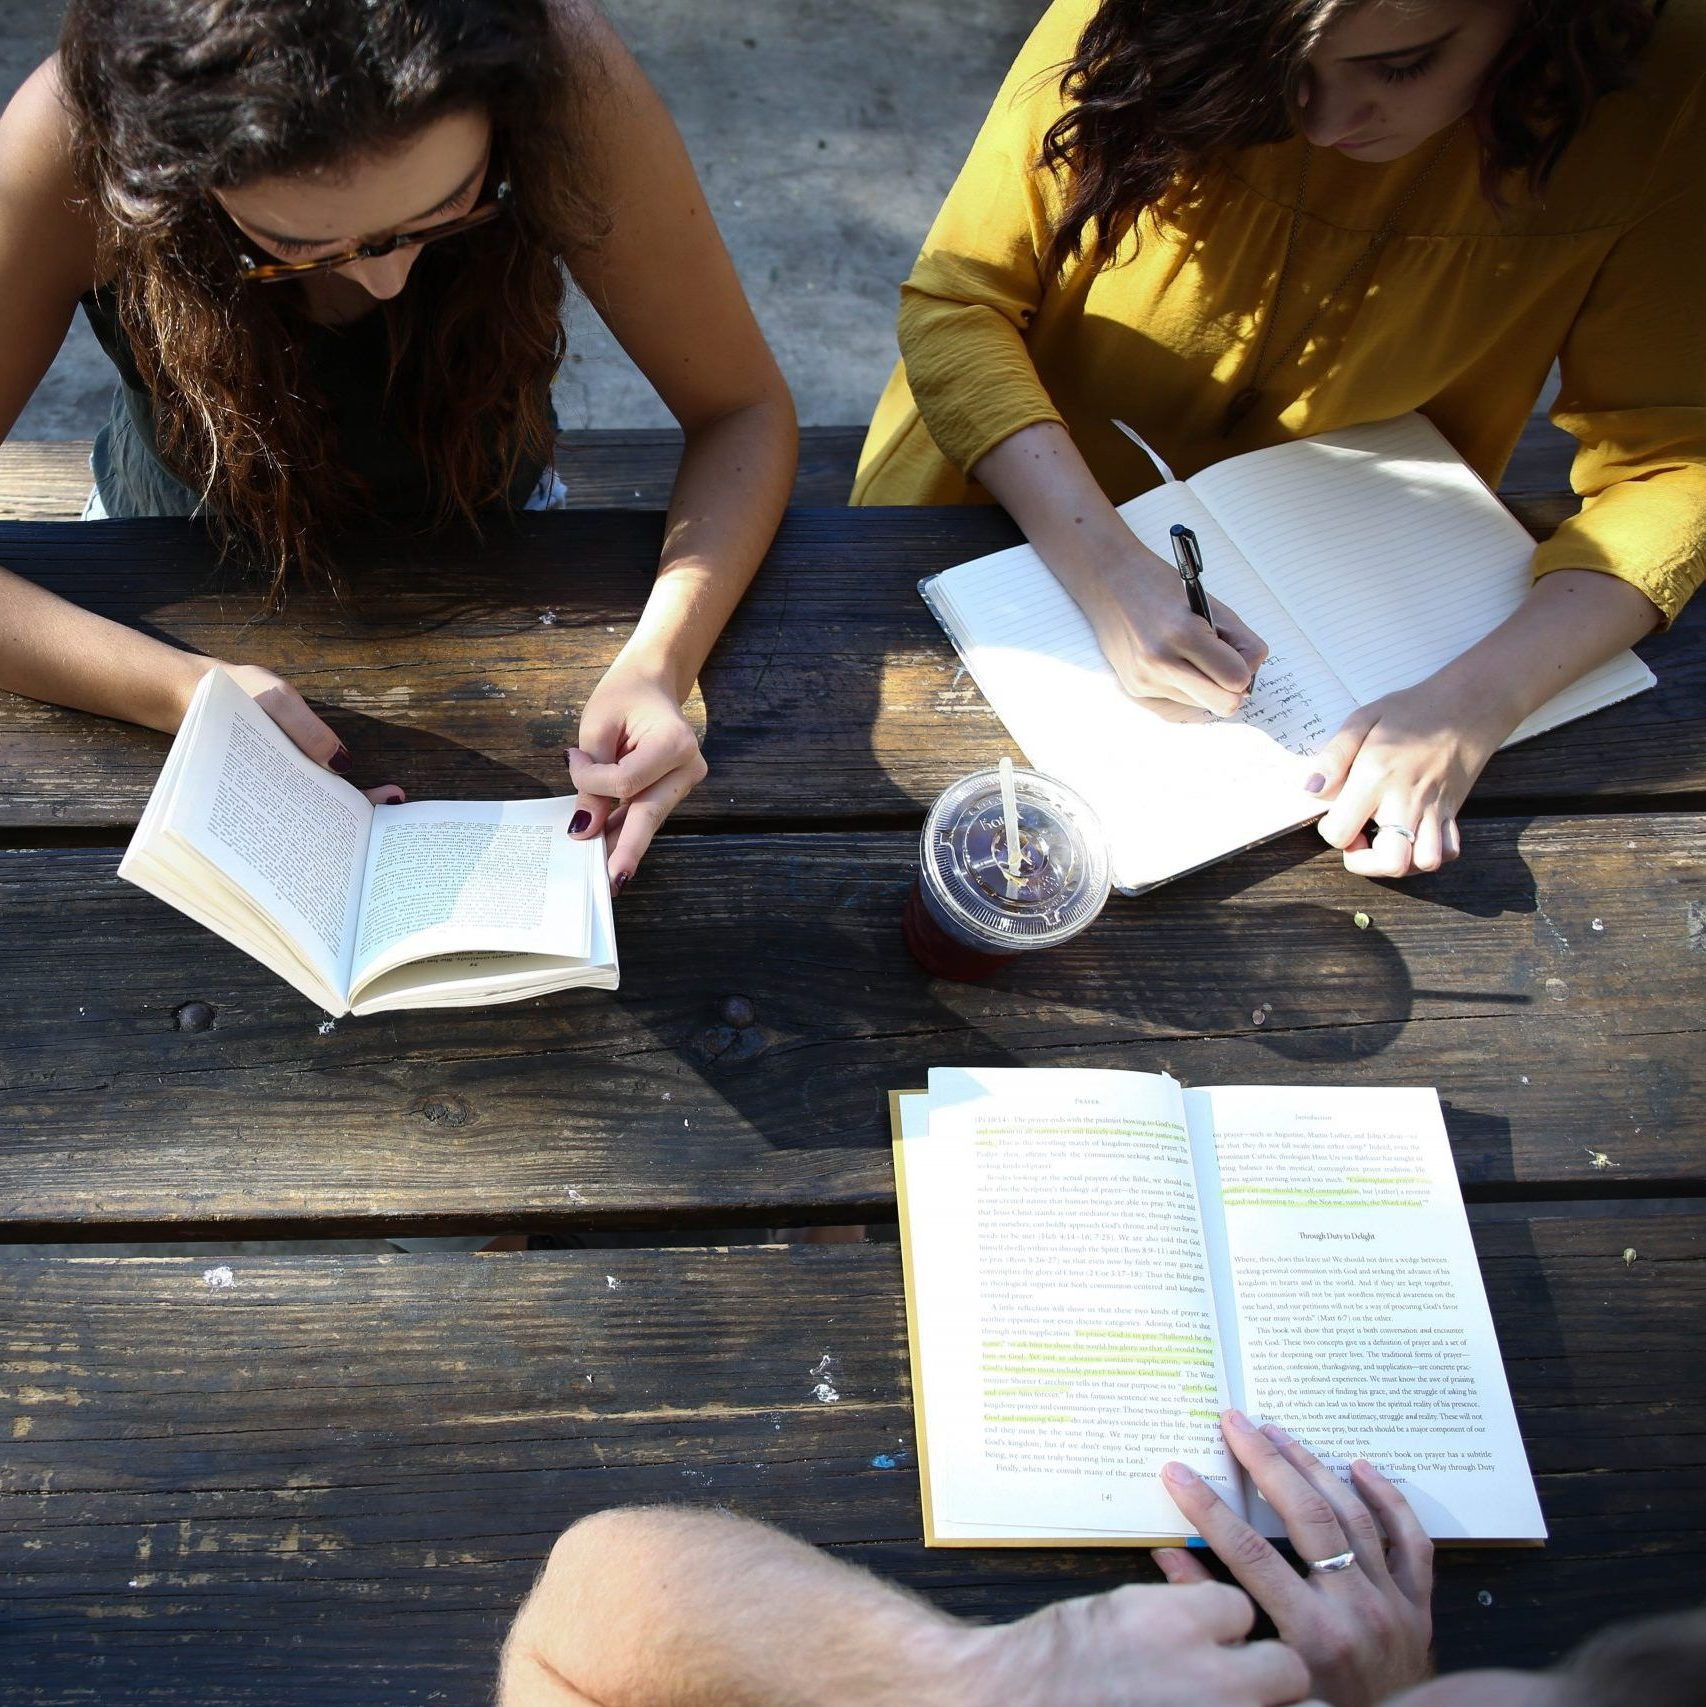 Two girls sitting at a picnic table writing in journals.